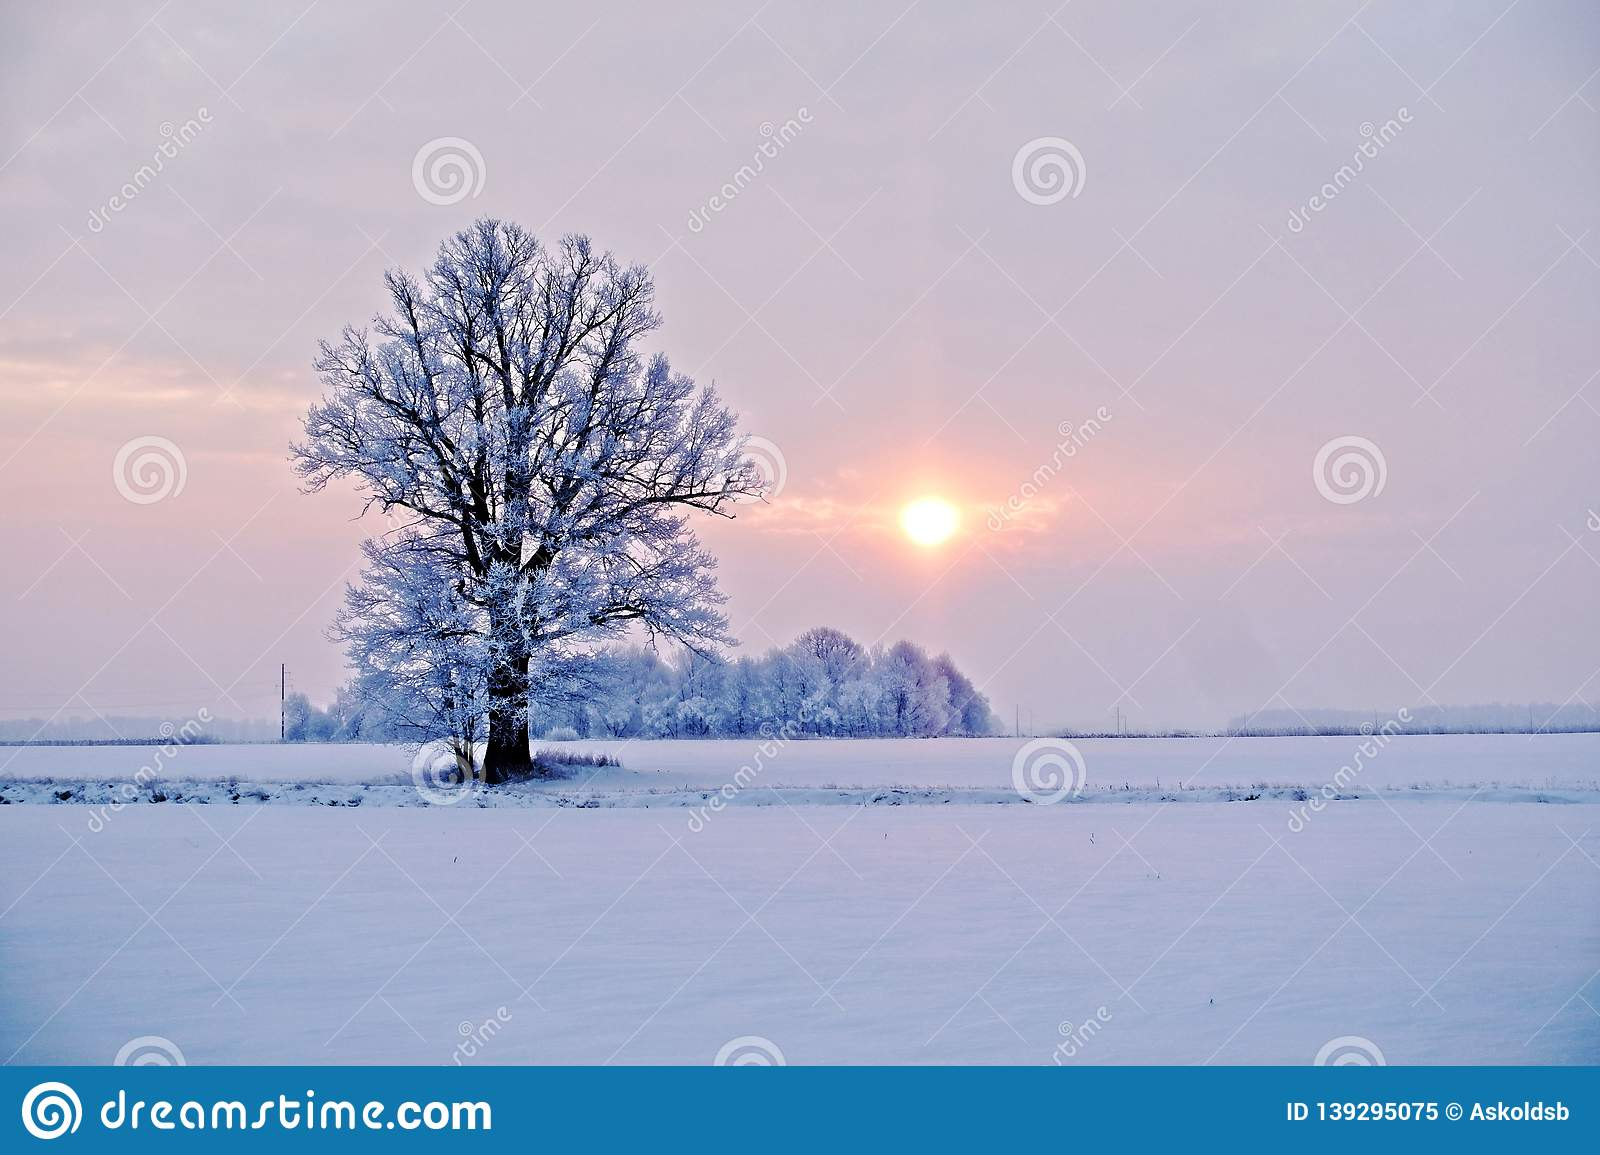 Winter landscape. Lonely tree in a snowy field at sunrise - image